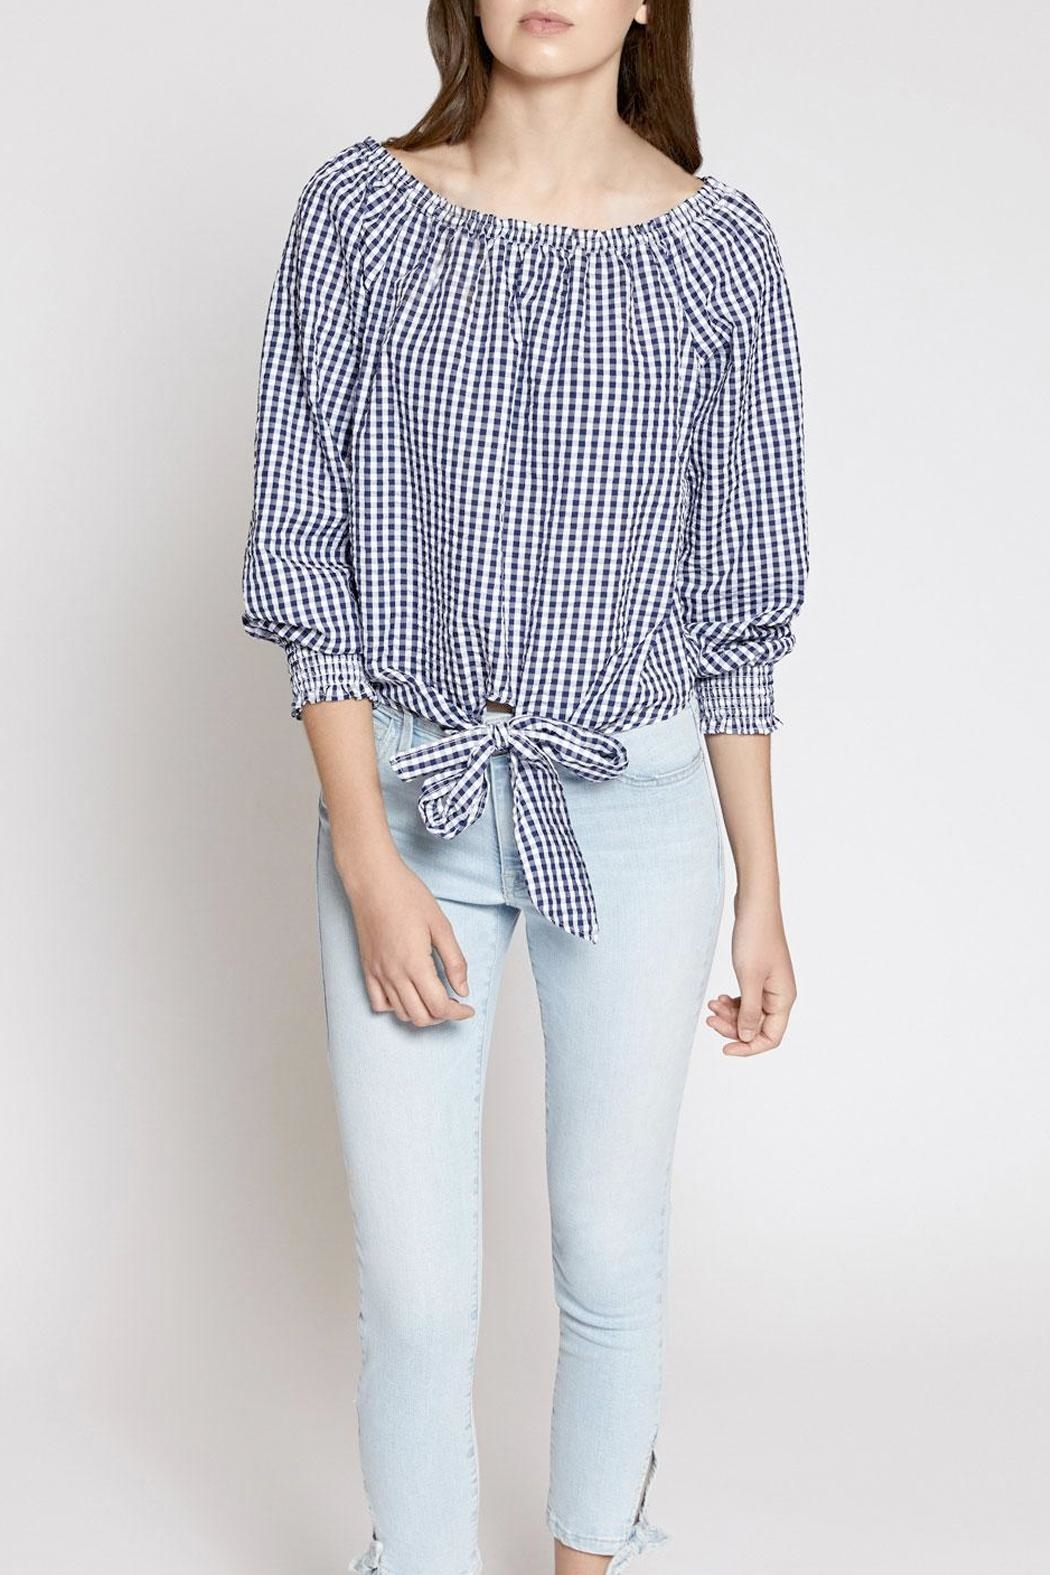 Sanctuary Claire Off-The-Shoulder Top - Front Cropped Image